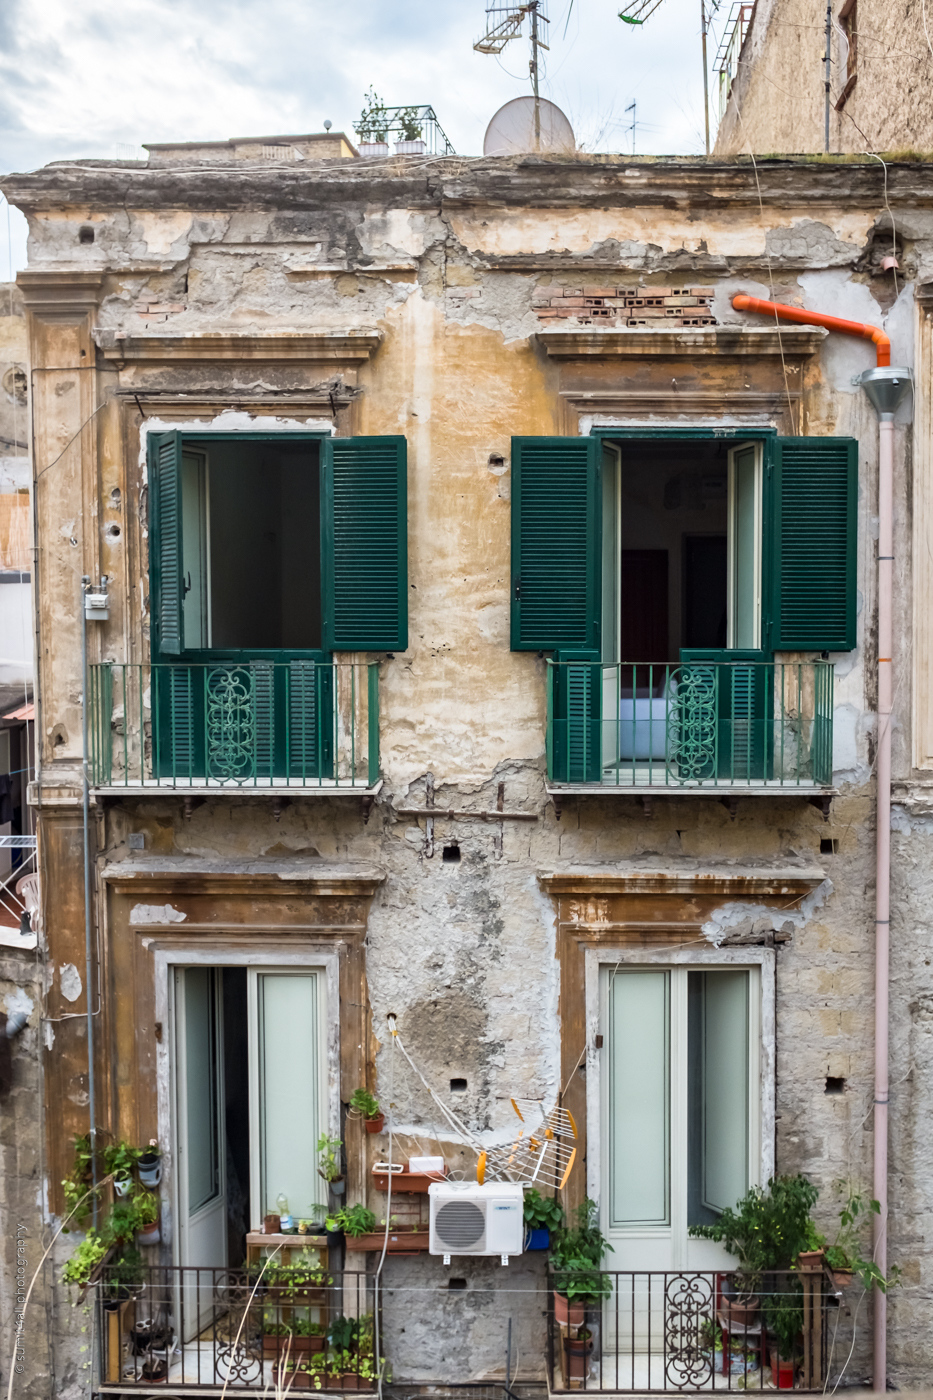 Beauty in Imperfection in a City - Naples, Italy